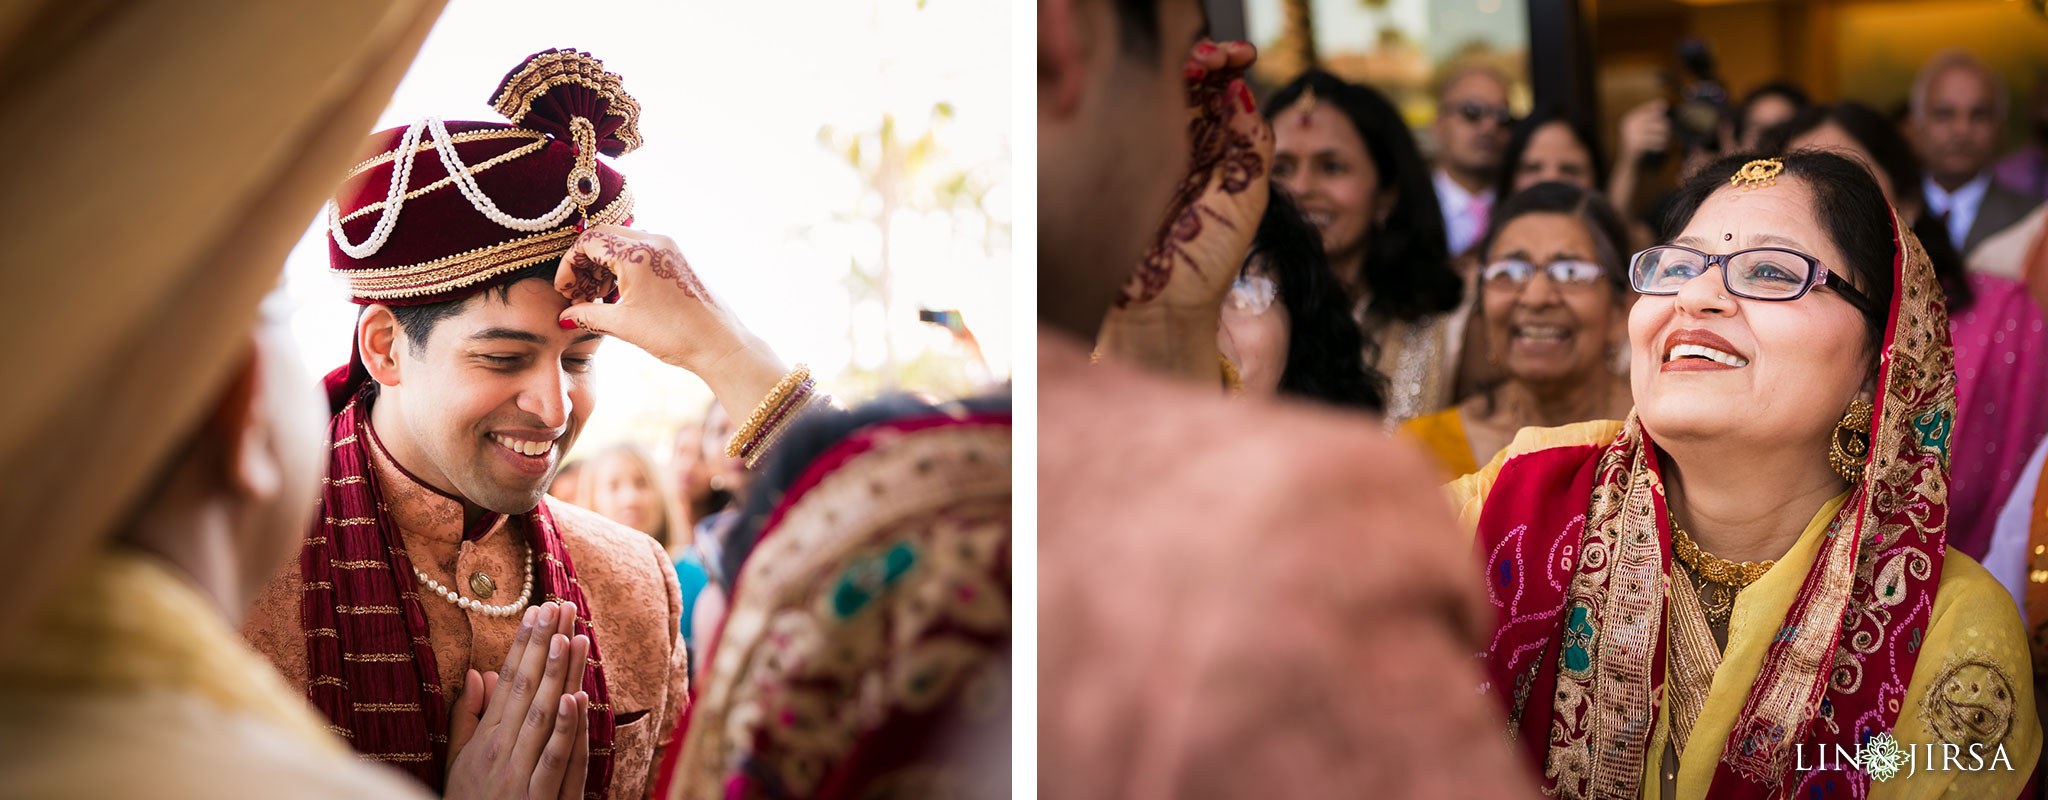 22 hilton waterfront huntington beach indian baraat wedding photography